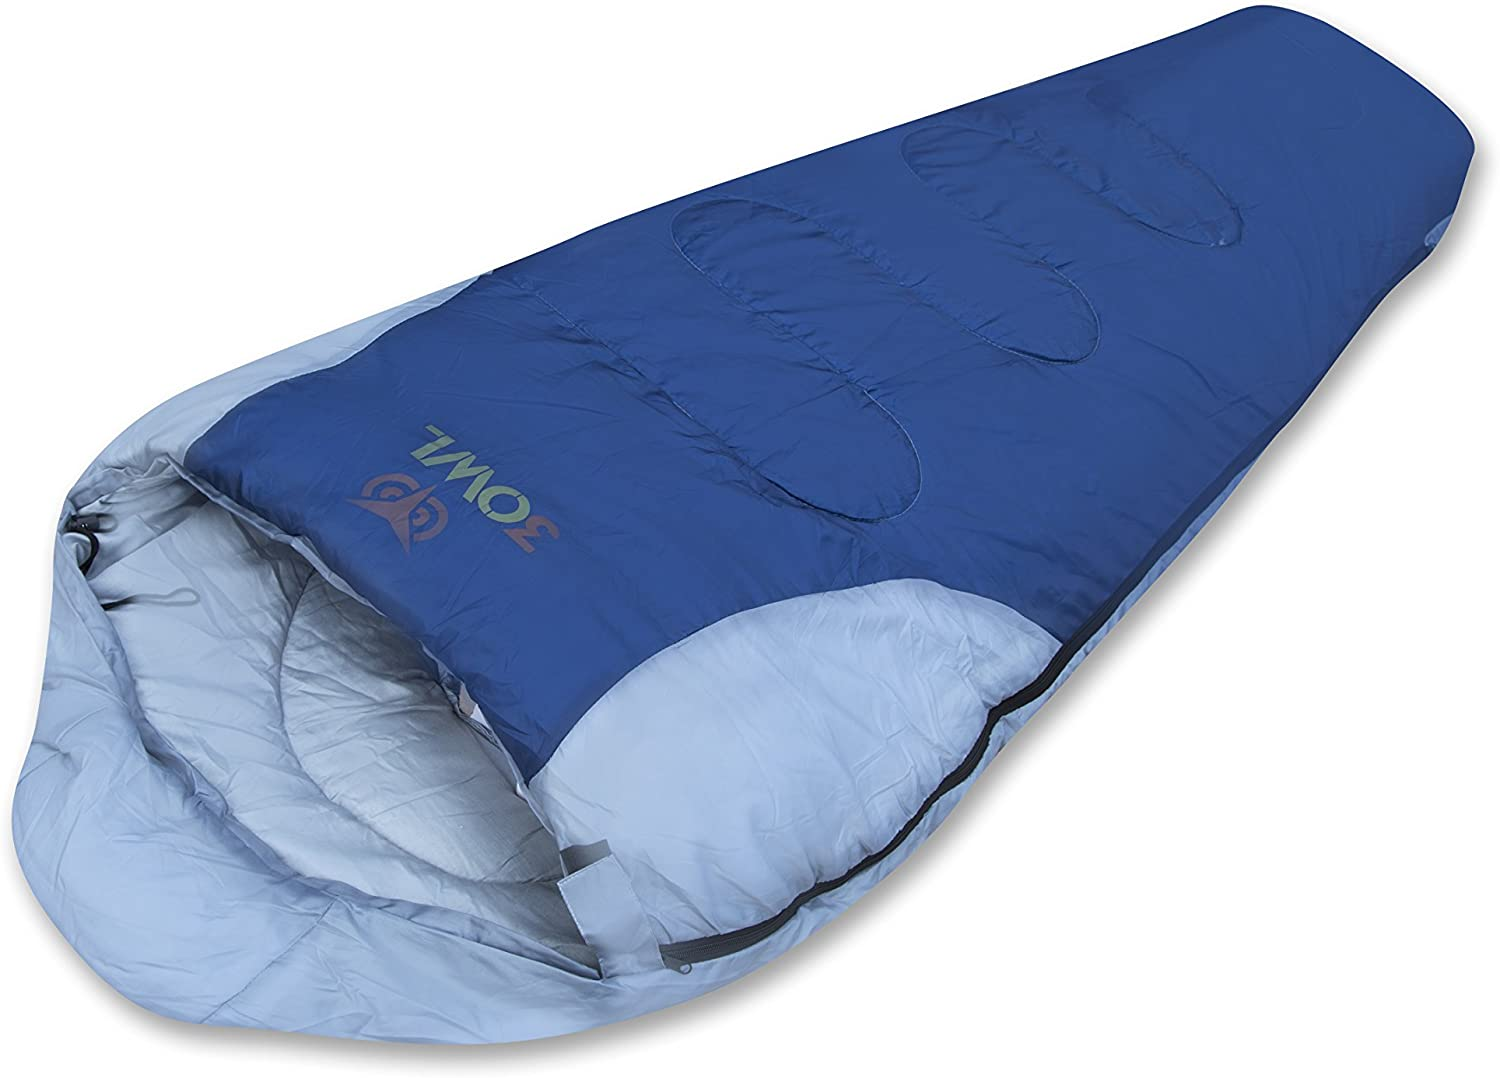 3OWL Mummy Sleeping Bag 3Season Ideal for Hiking, Camping, and Outdoors